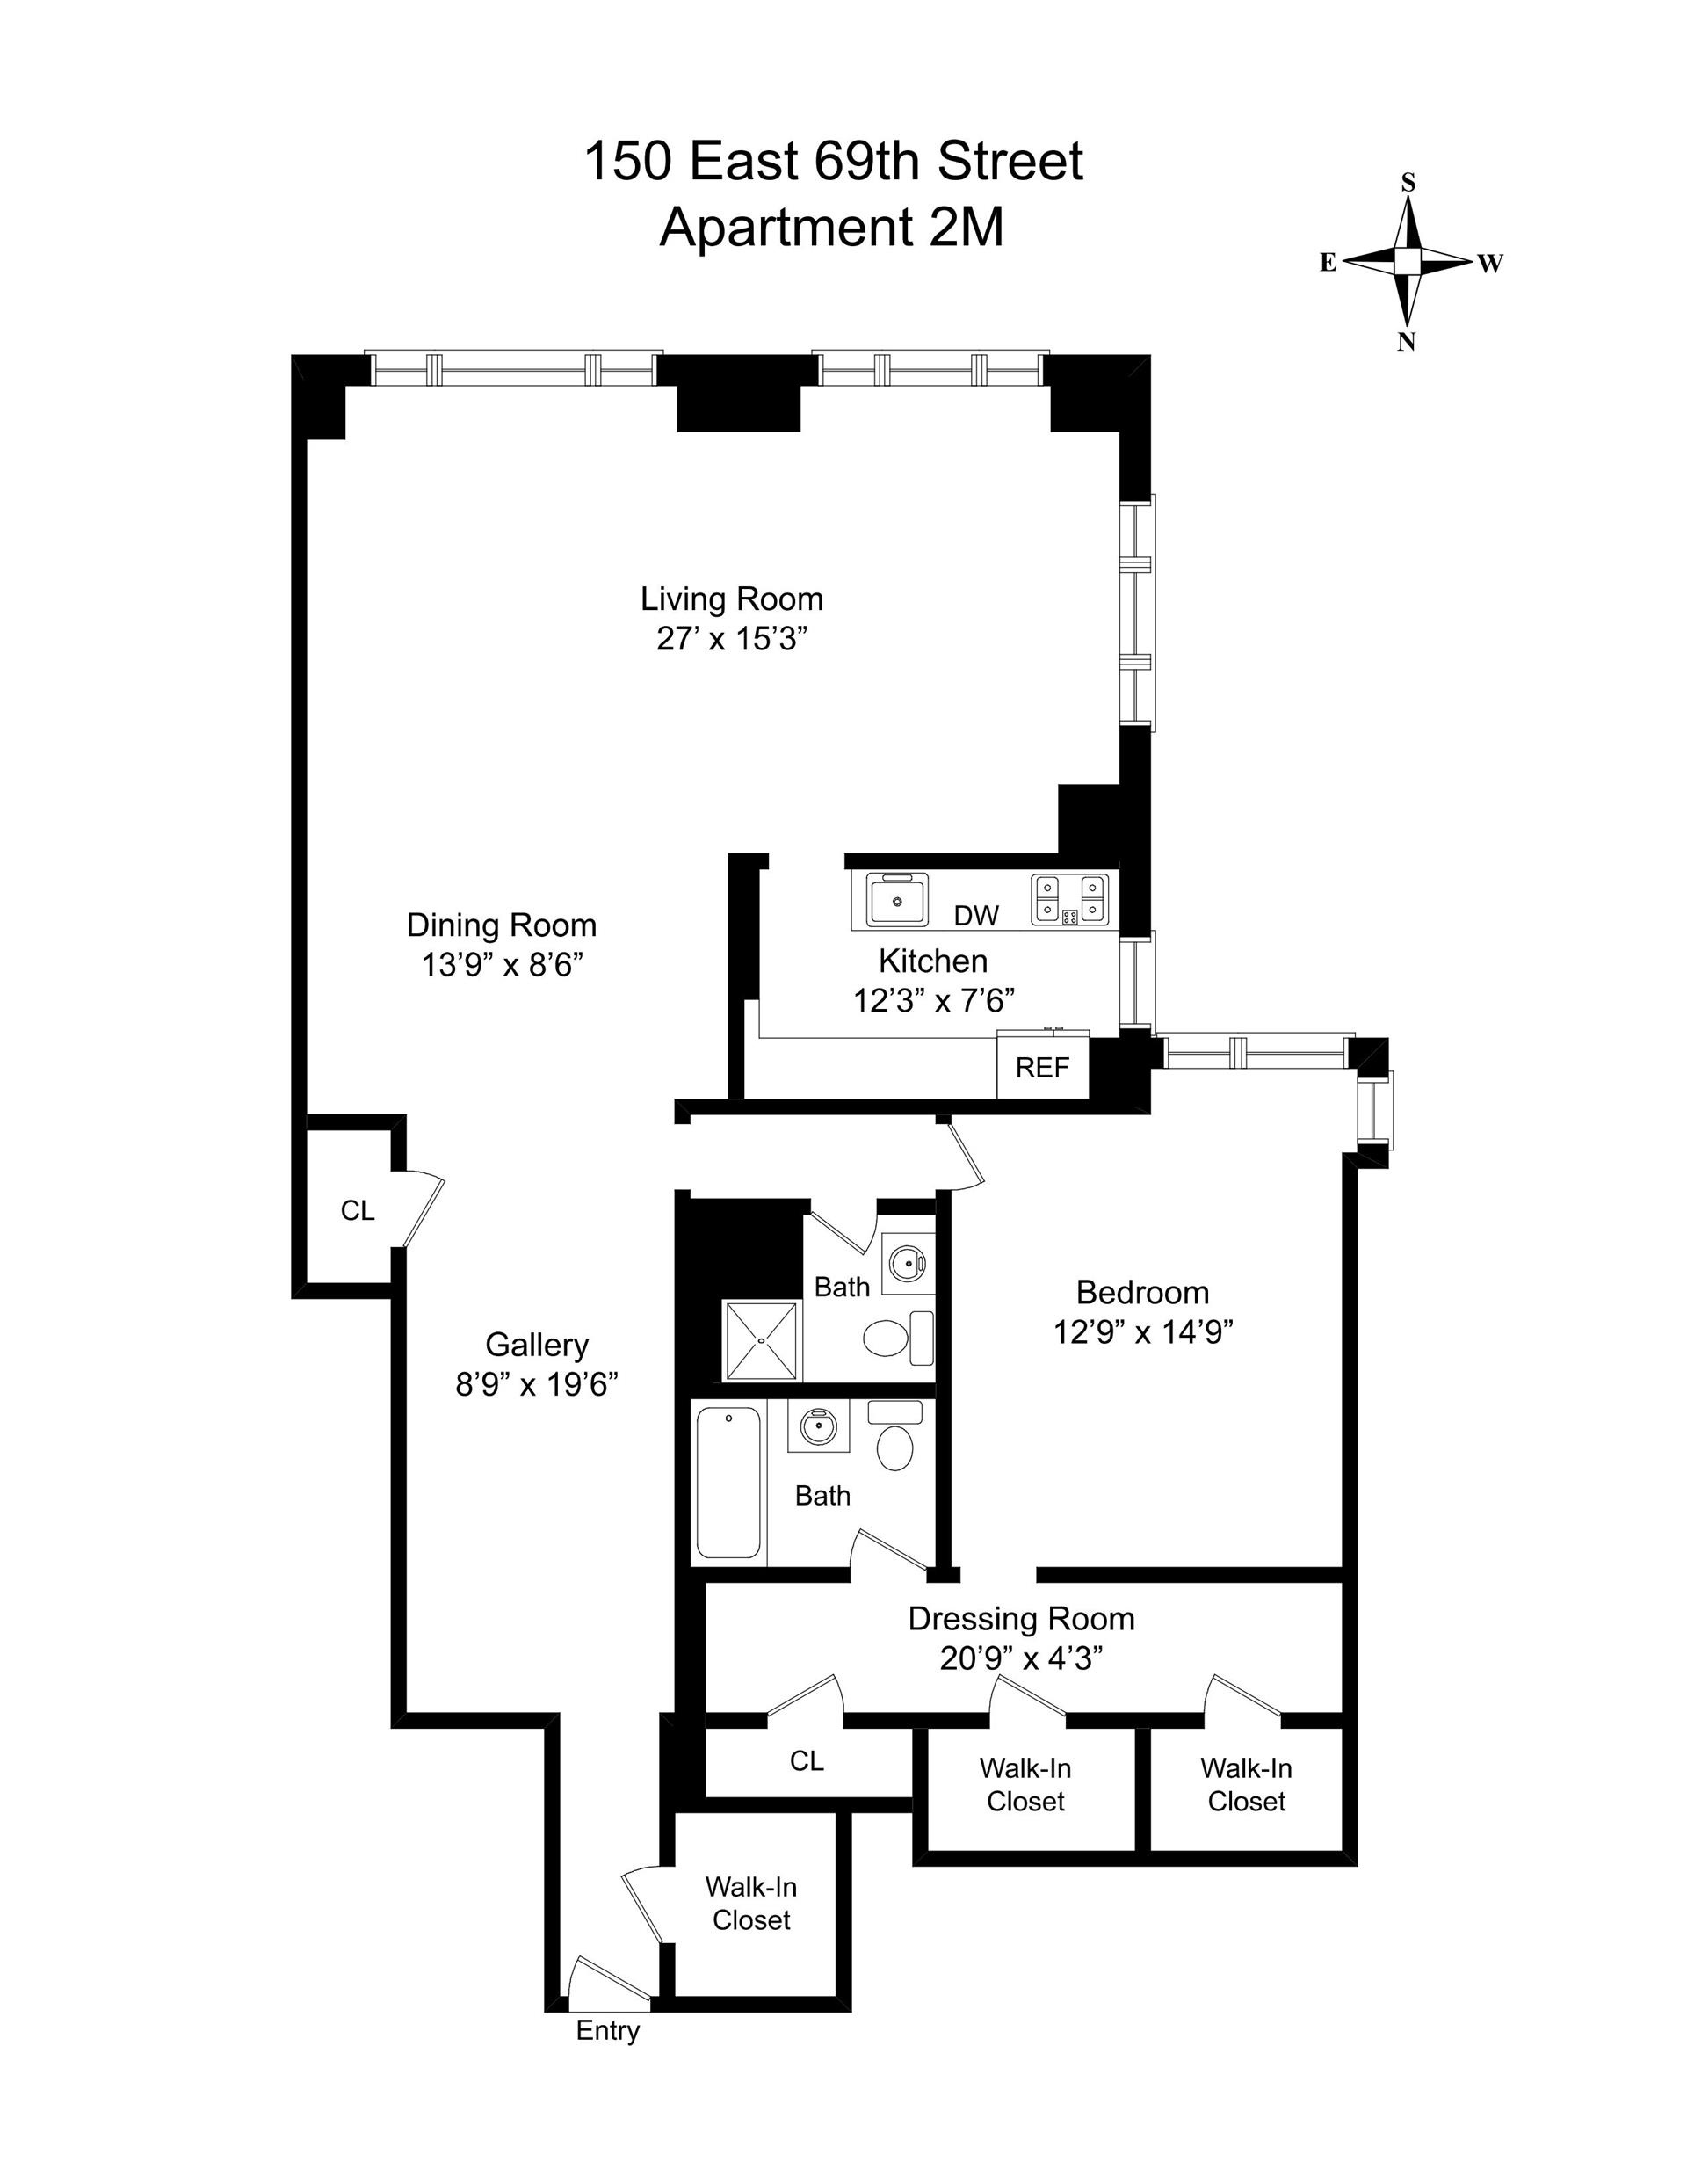 Floor plan of The Imperial House, 150 East 69th St, 2M - Upper East Side, New York